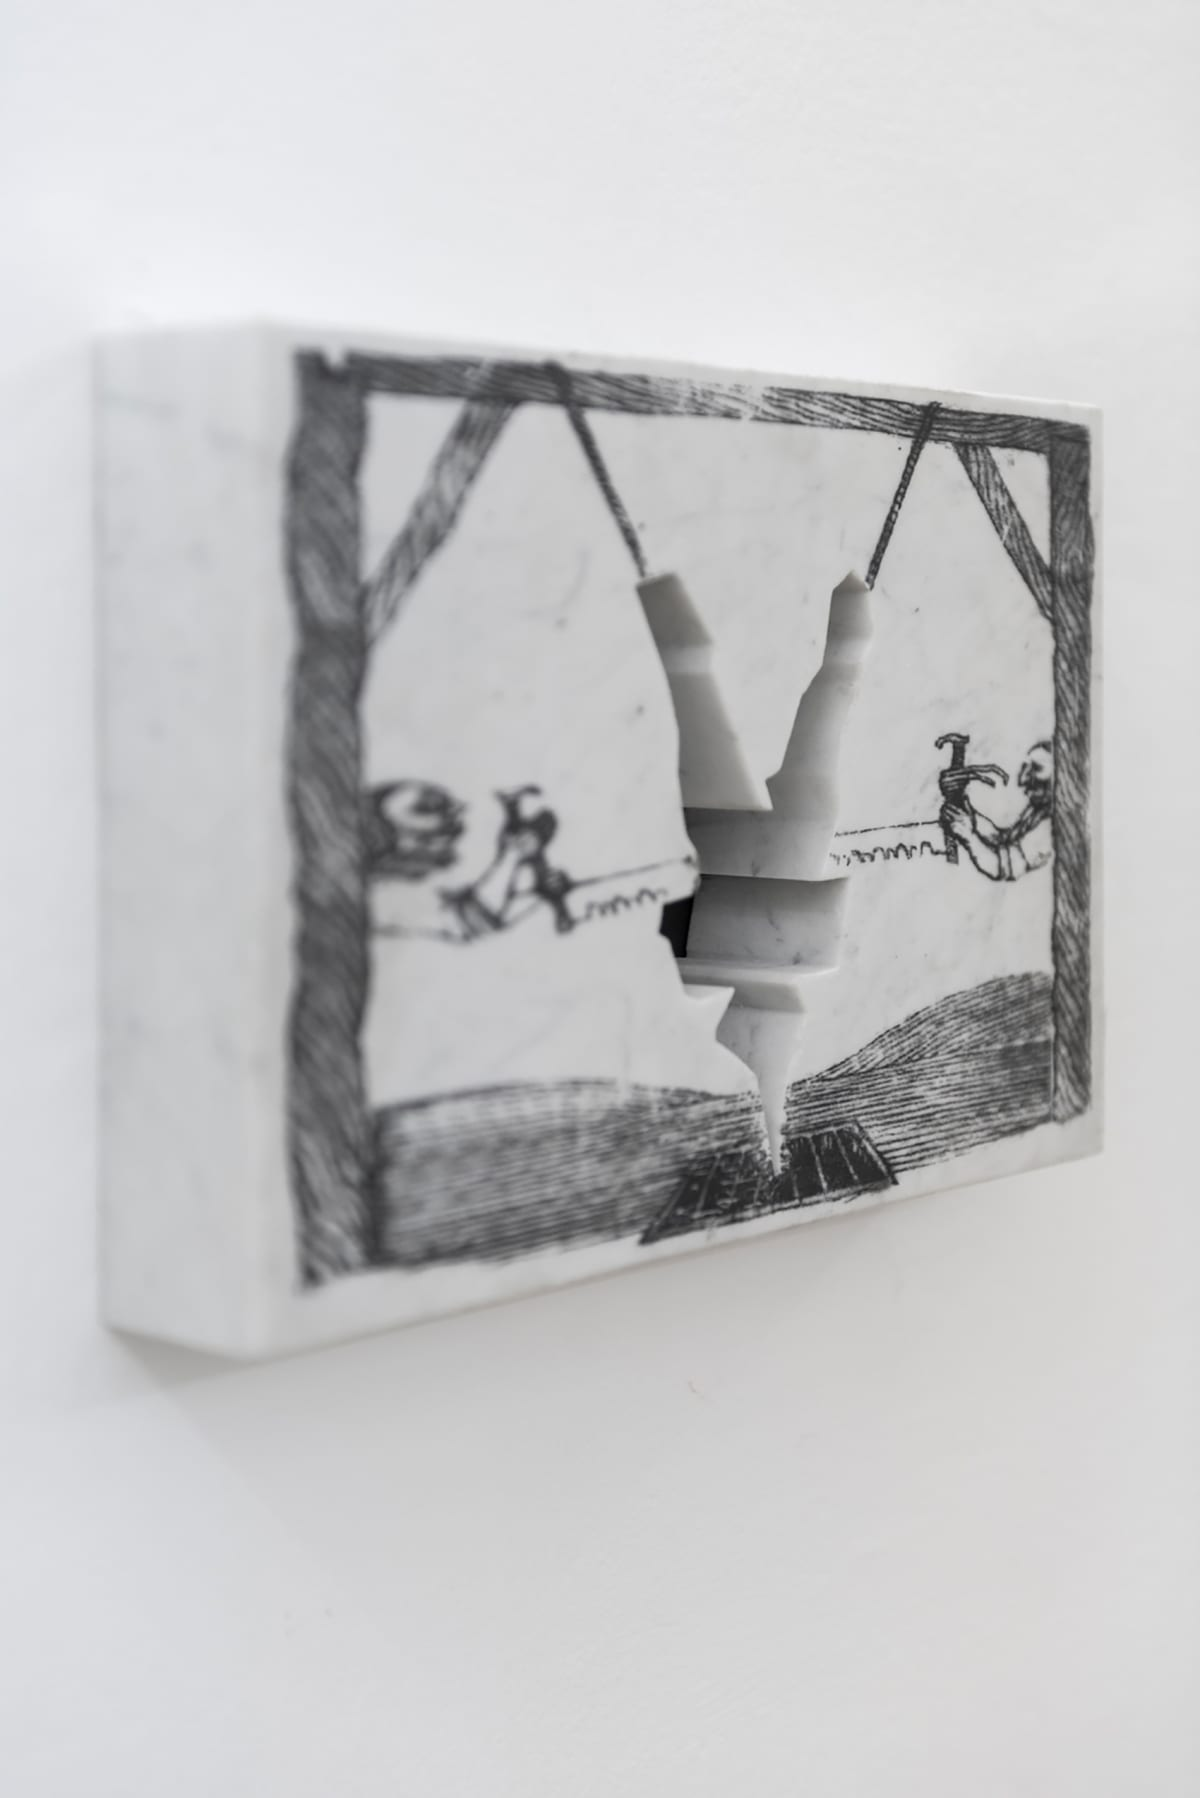 Image shows small artwork marble with a photo transfer and a piece has been cut out in the form of a man